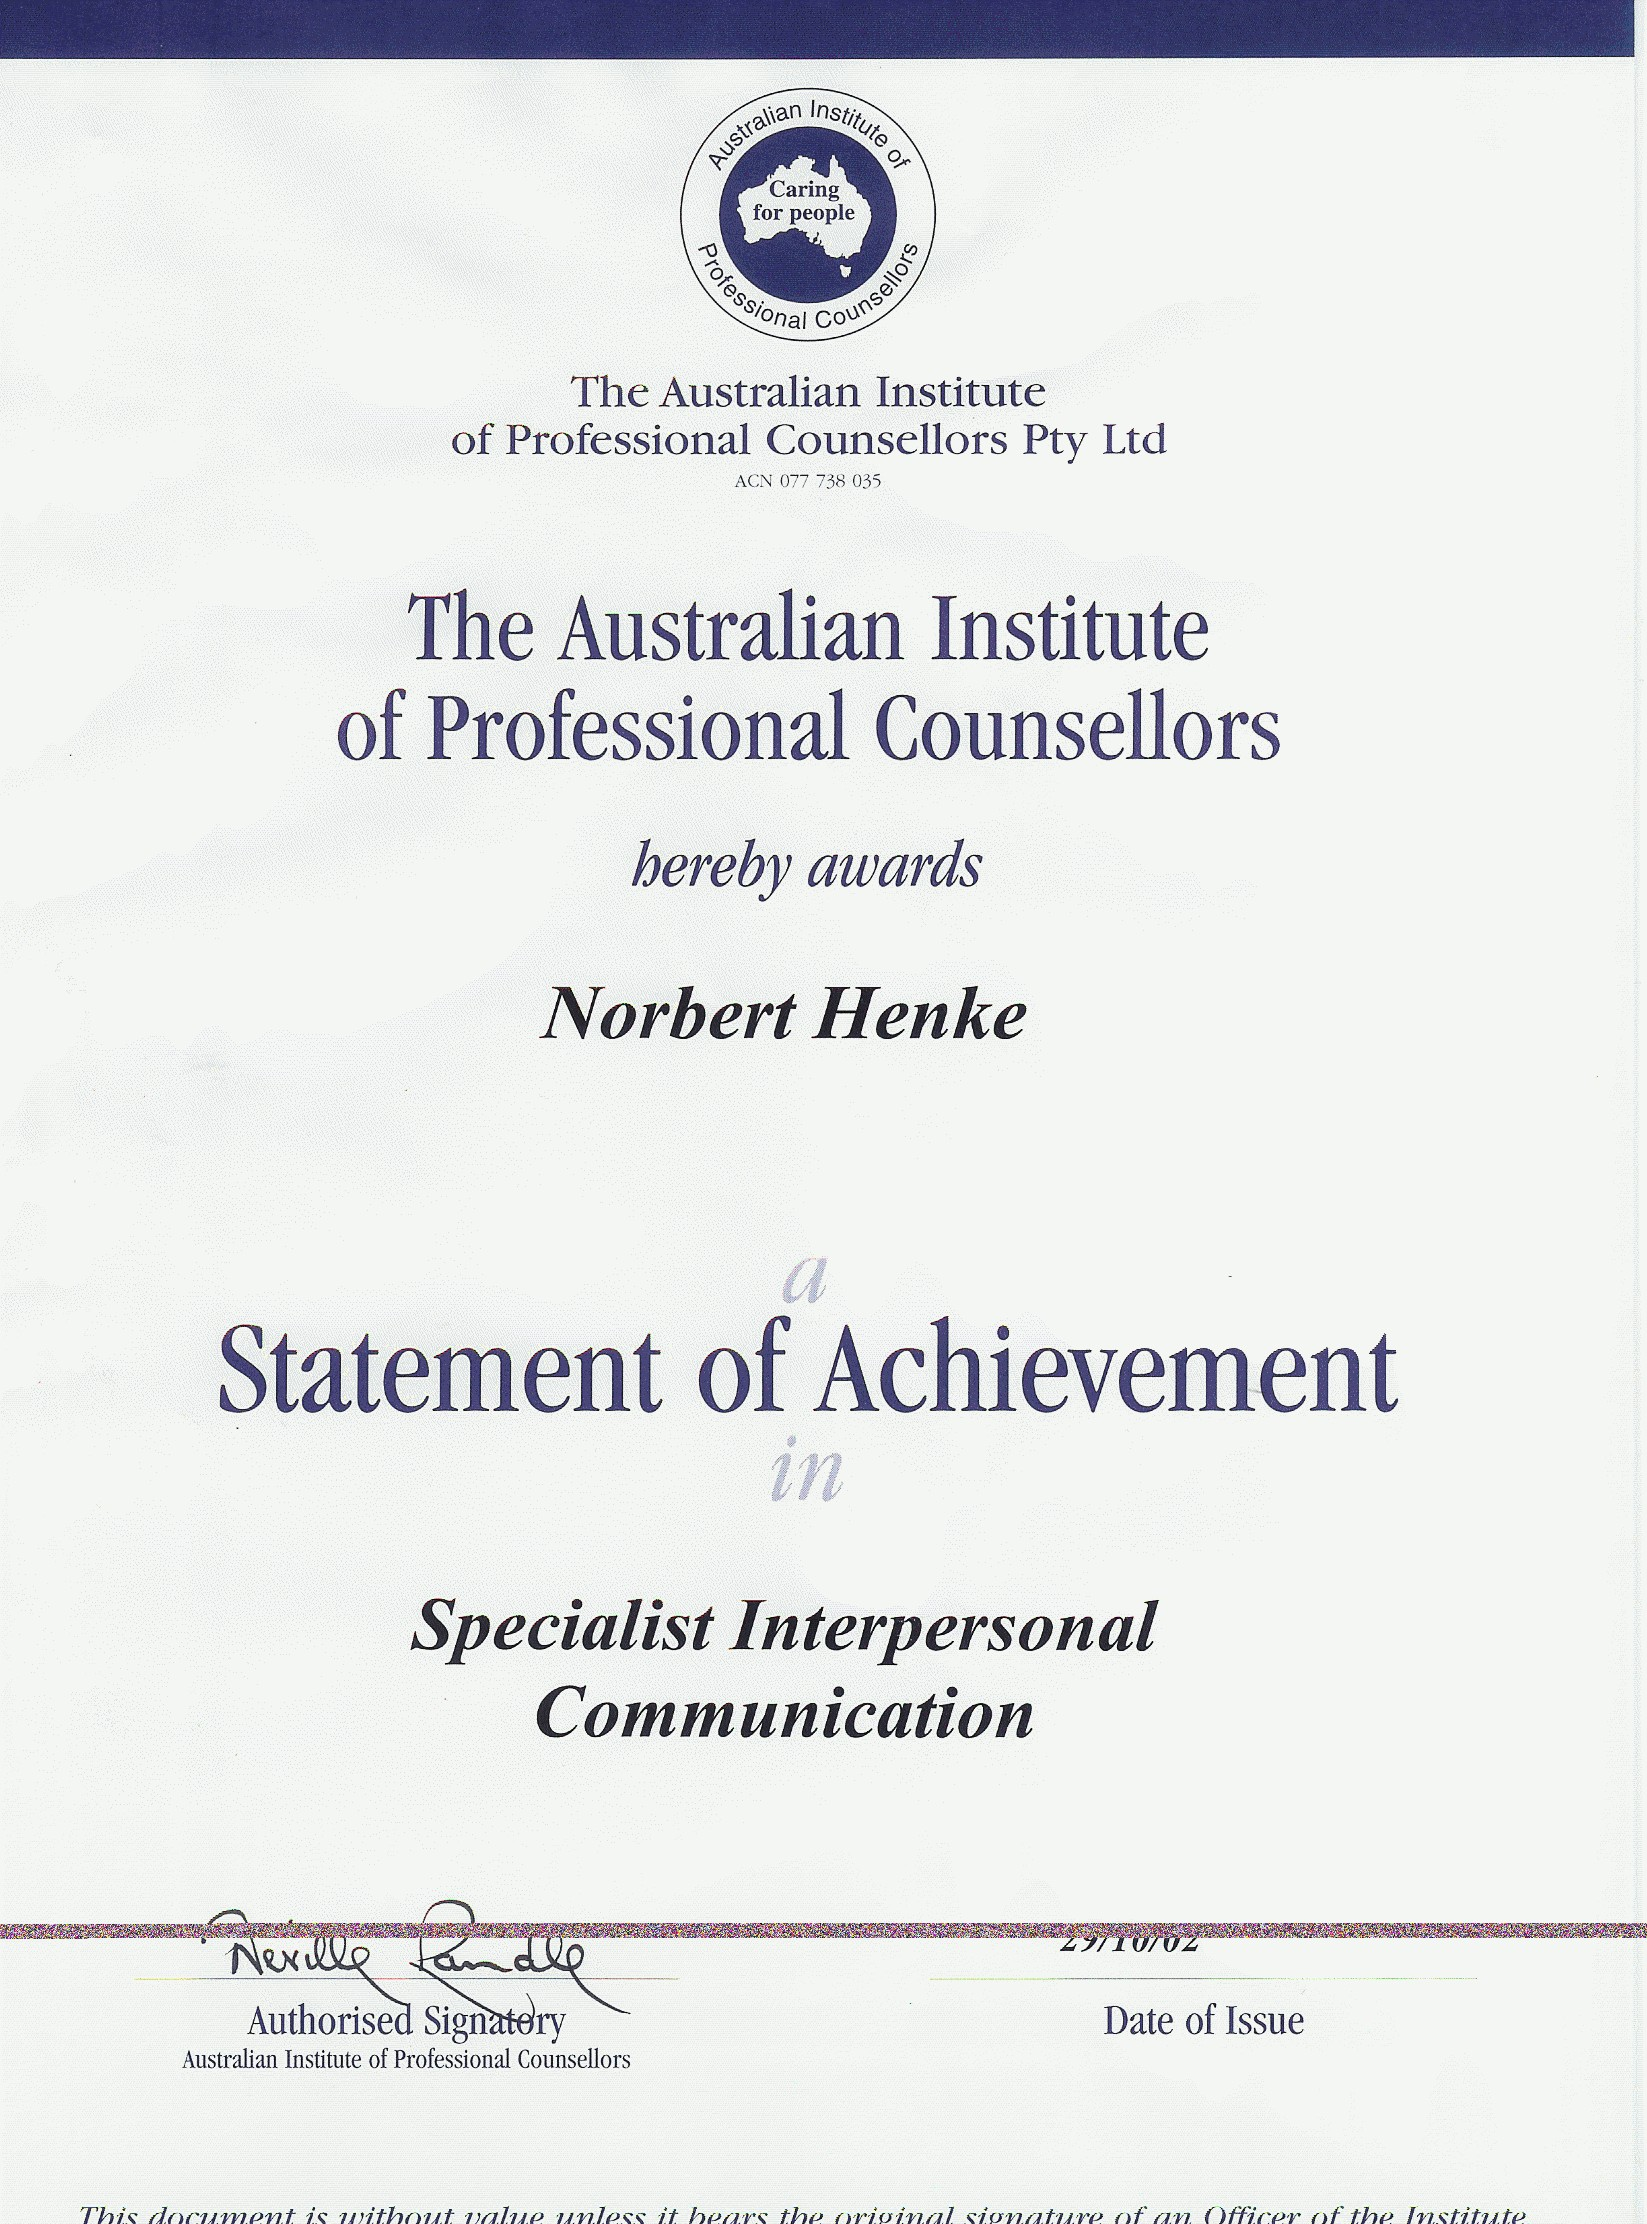 Specialised Interpersonal Communications